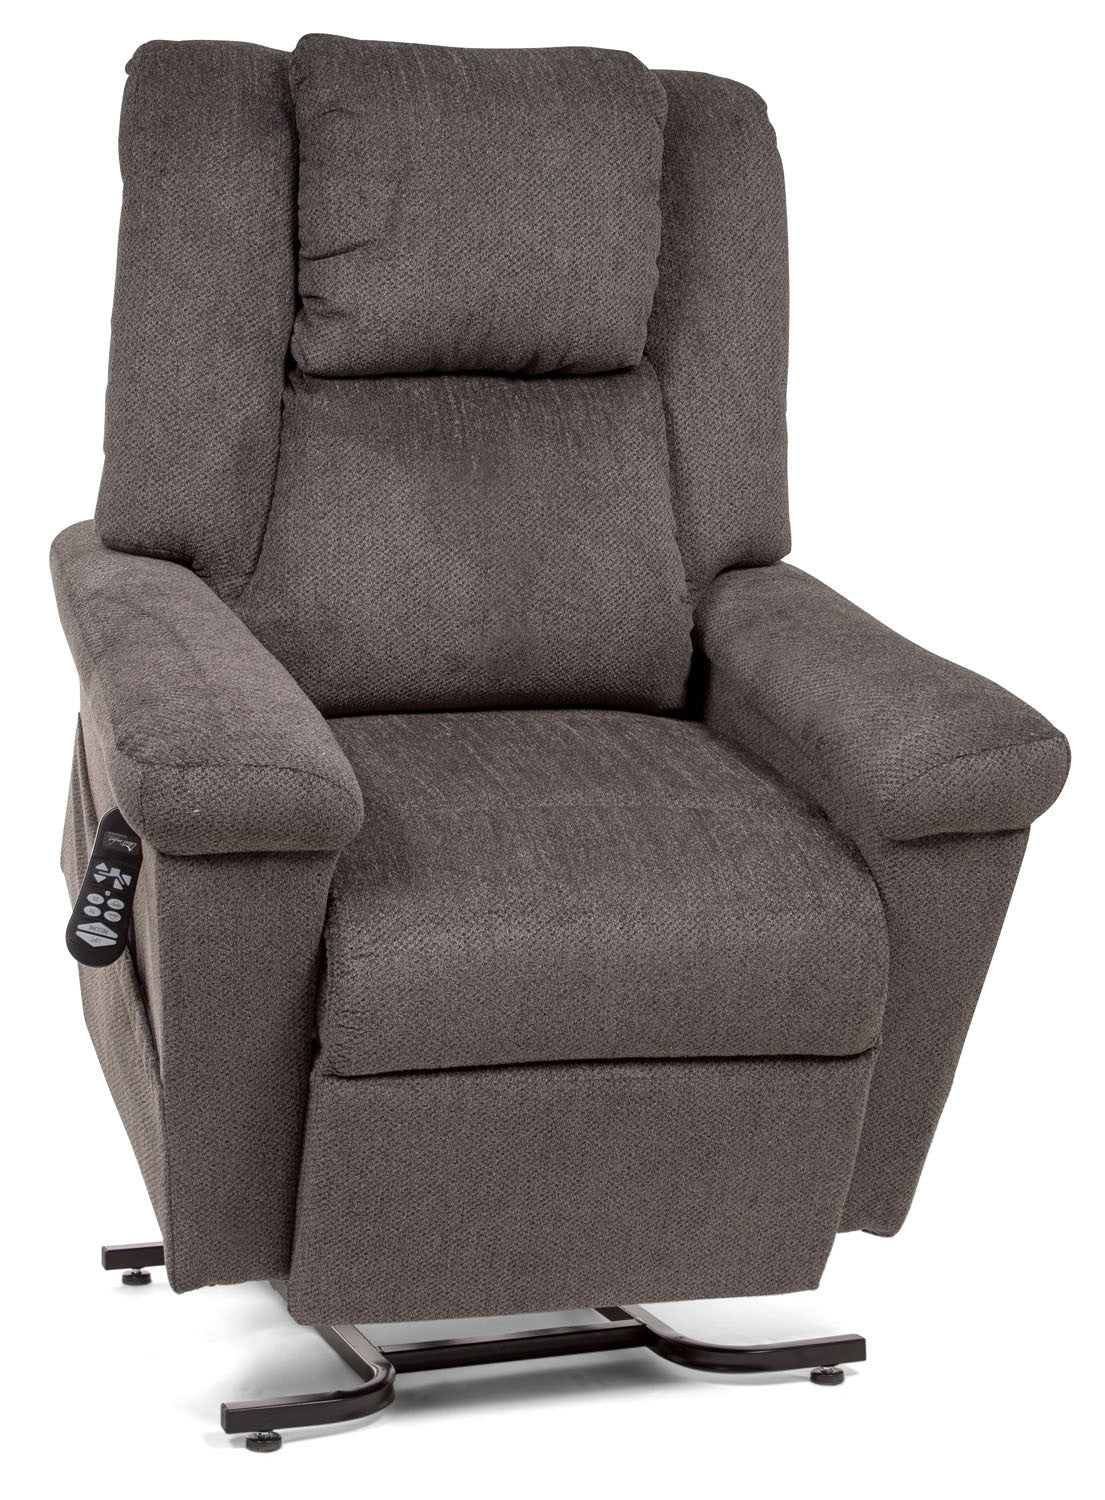 UC682 Zero Gravity Lift Chair Recliner with Daydreamer Power Pillow